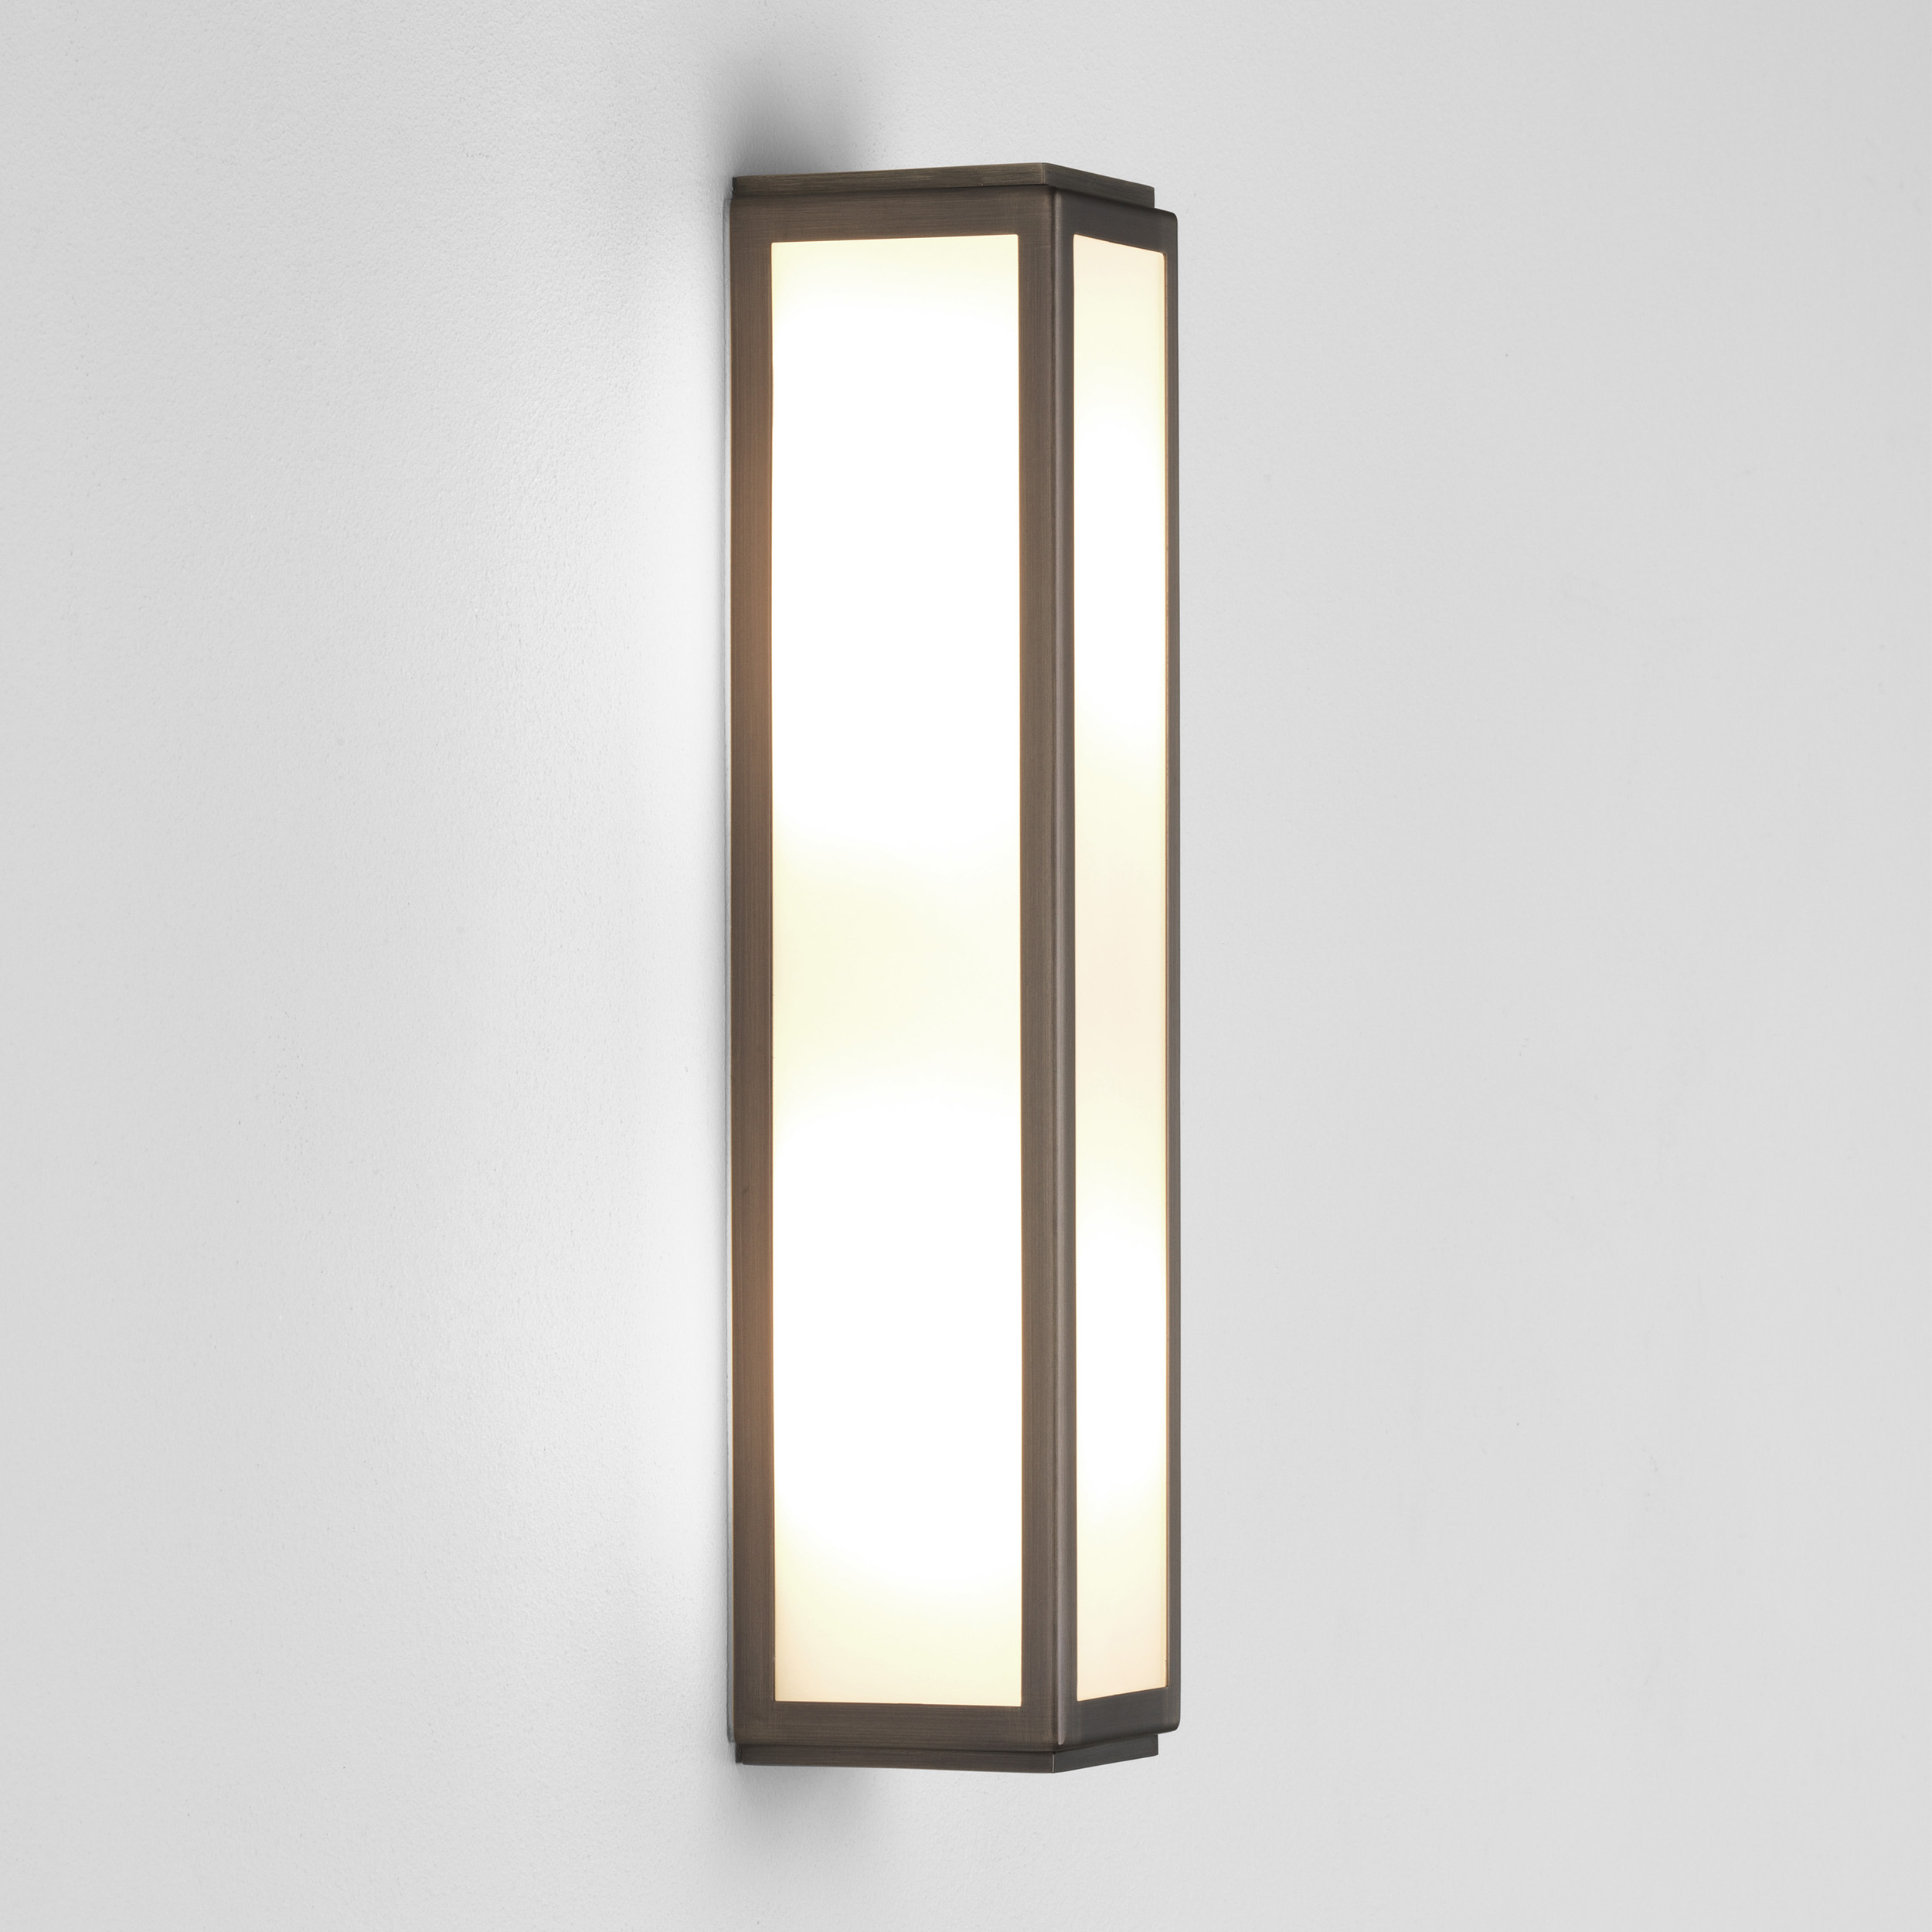 ASTRO Mashiko 360 Bathroom bronze LED wall light 6.4W 3000K warm white Thumbnail 1